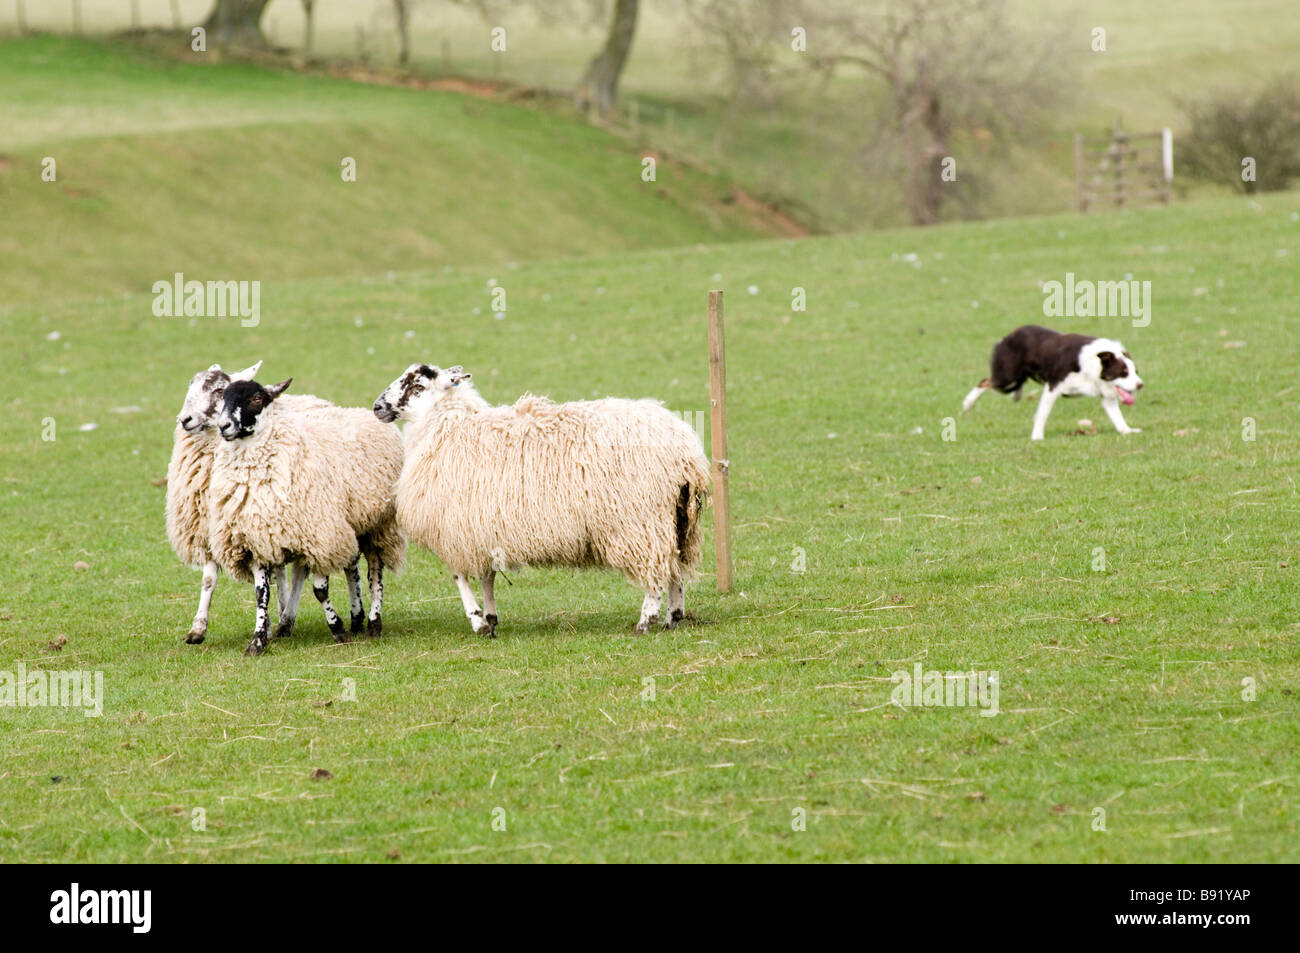 sheep dog trial sheepdog dogs working Sheppard rounding up one man and his farmer farming country sport training - Stock Image